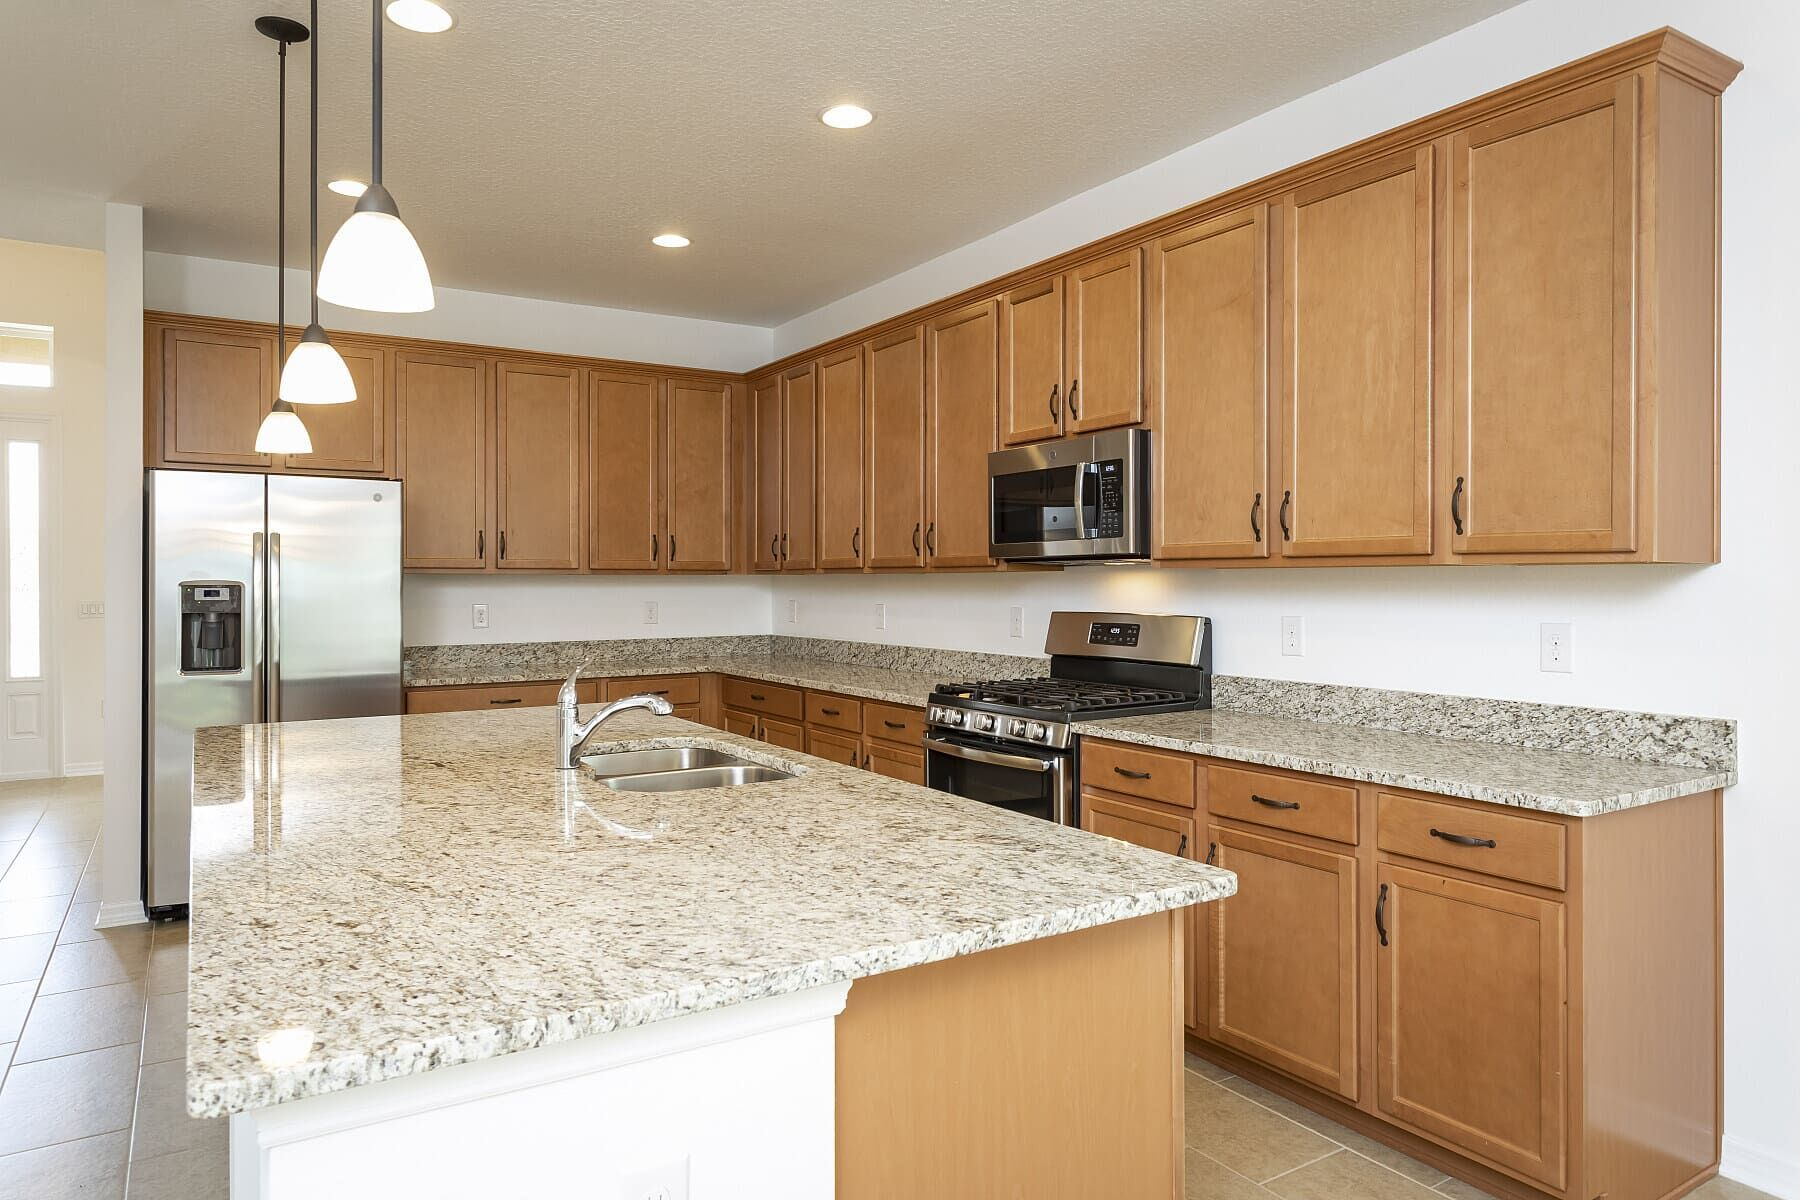 Kitchen featured in the Dorchester By M/I Homes in Orlando, FL